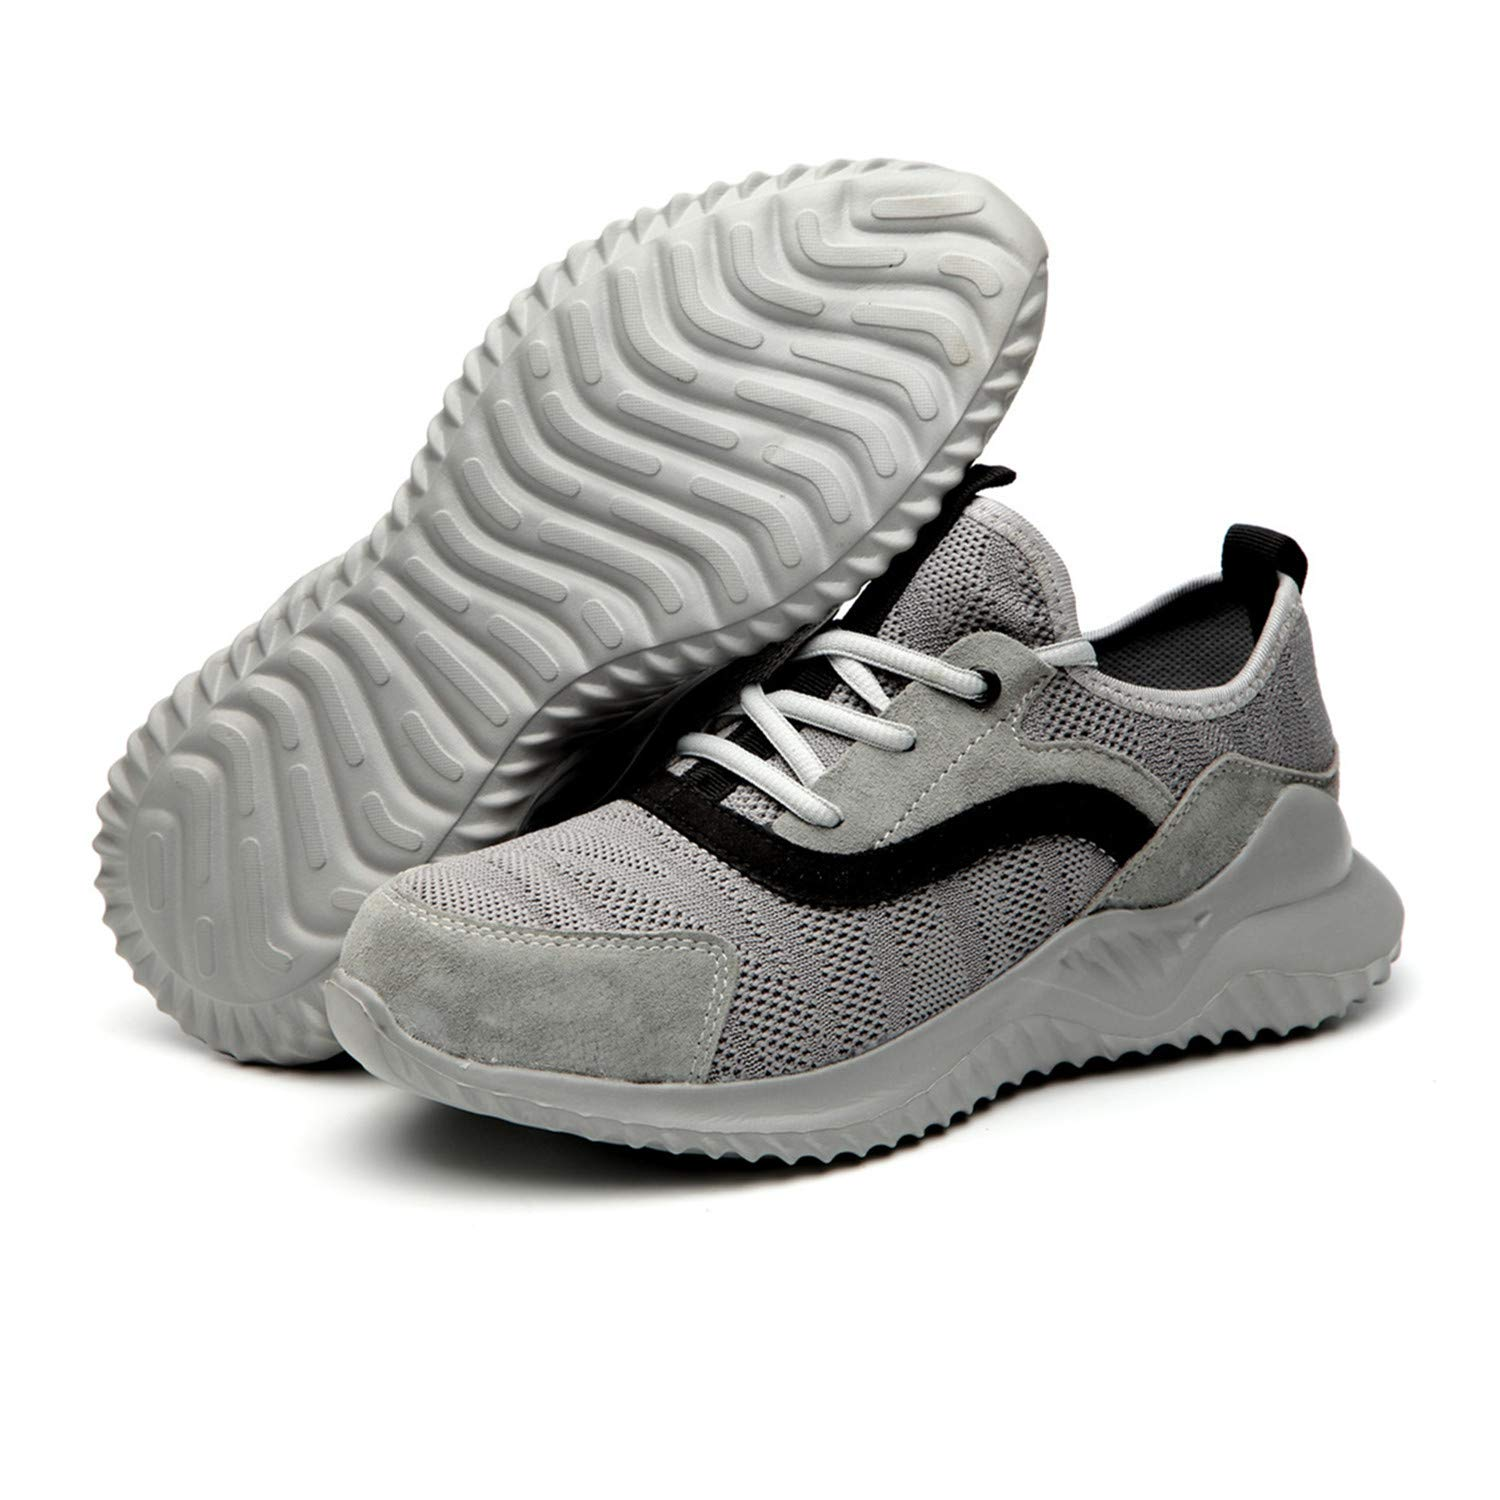 Work Safety Shoes Mesh Lightweight Breathable Toe Construction Slip Resistant Shoes for Hiking Trail Tennis VEJUMBO Steel Toe Shoes Men